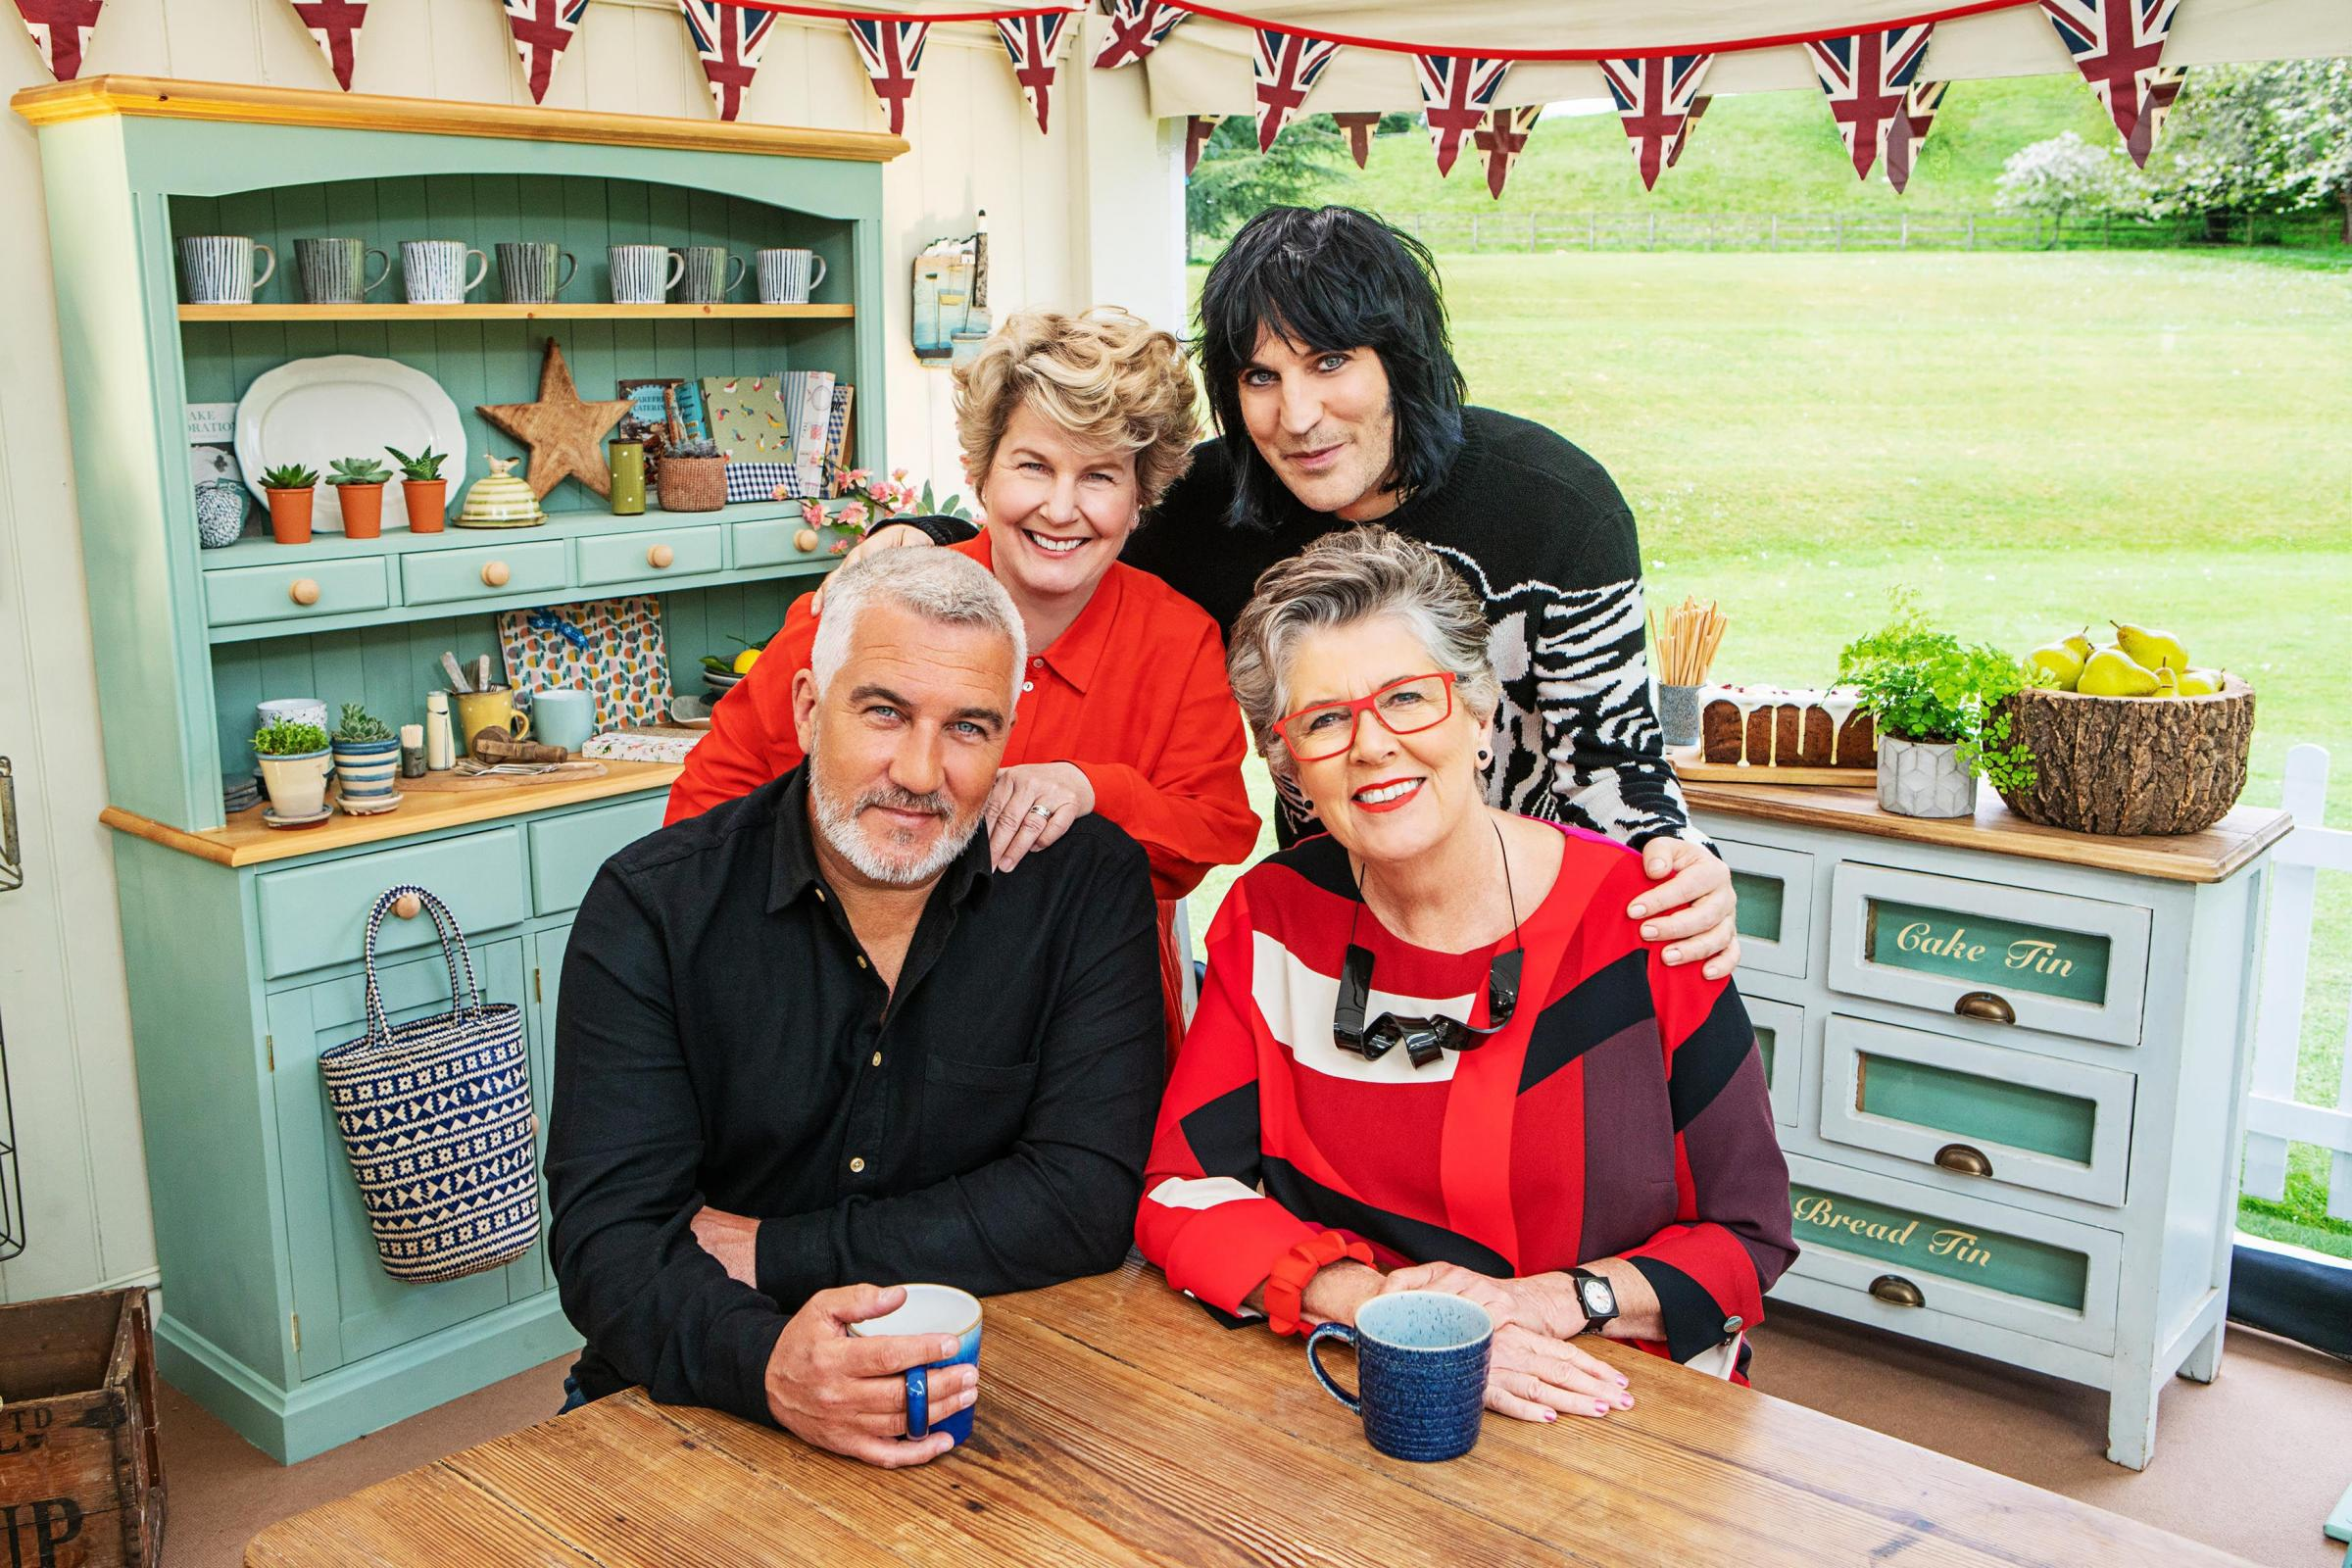 Bake Off judges Paul Hollywood and Prue Leith on the show's celebrity fans and inspiring bakers